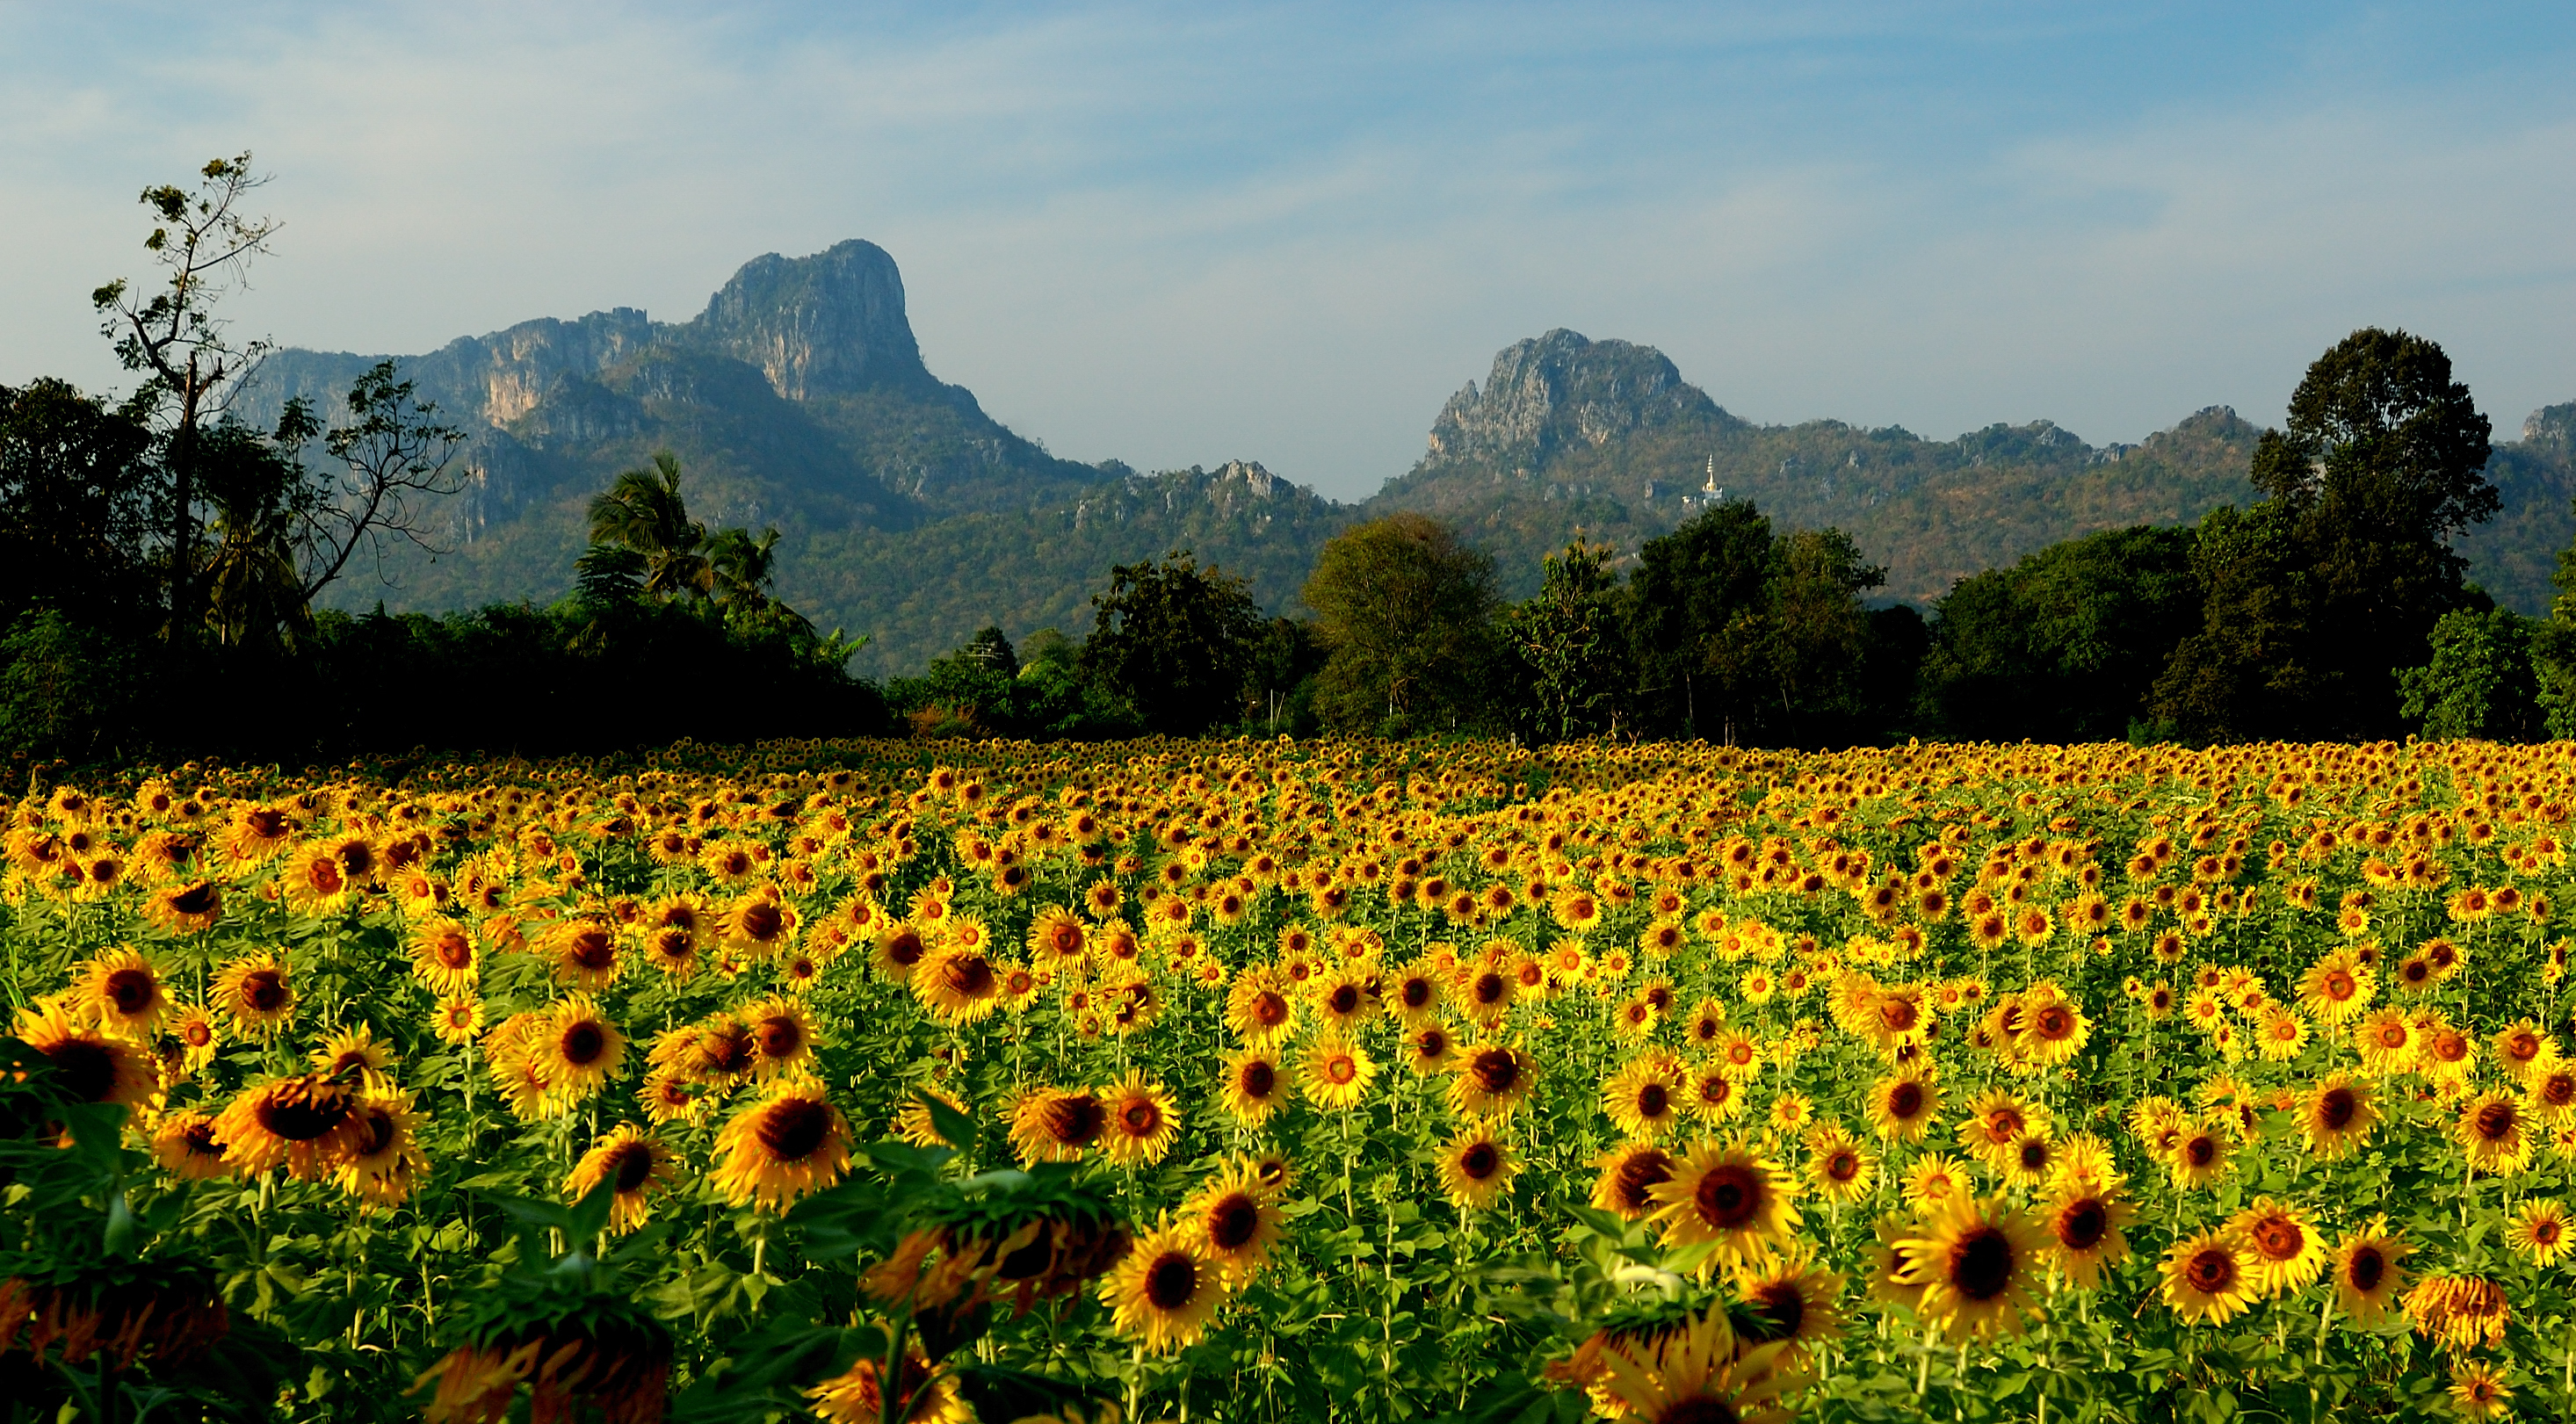 Field of sunflowers in the resort of Lopburi Thailand wallpapers and 2932x1621